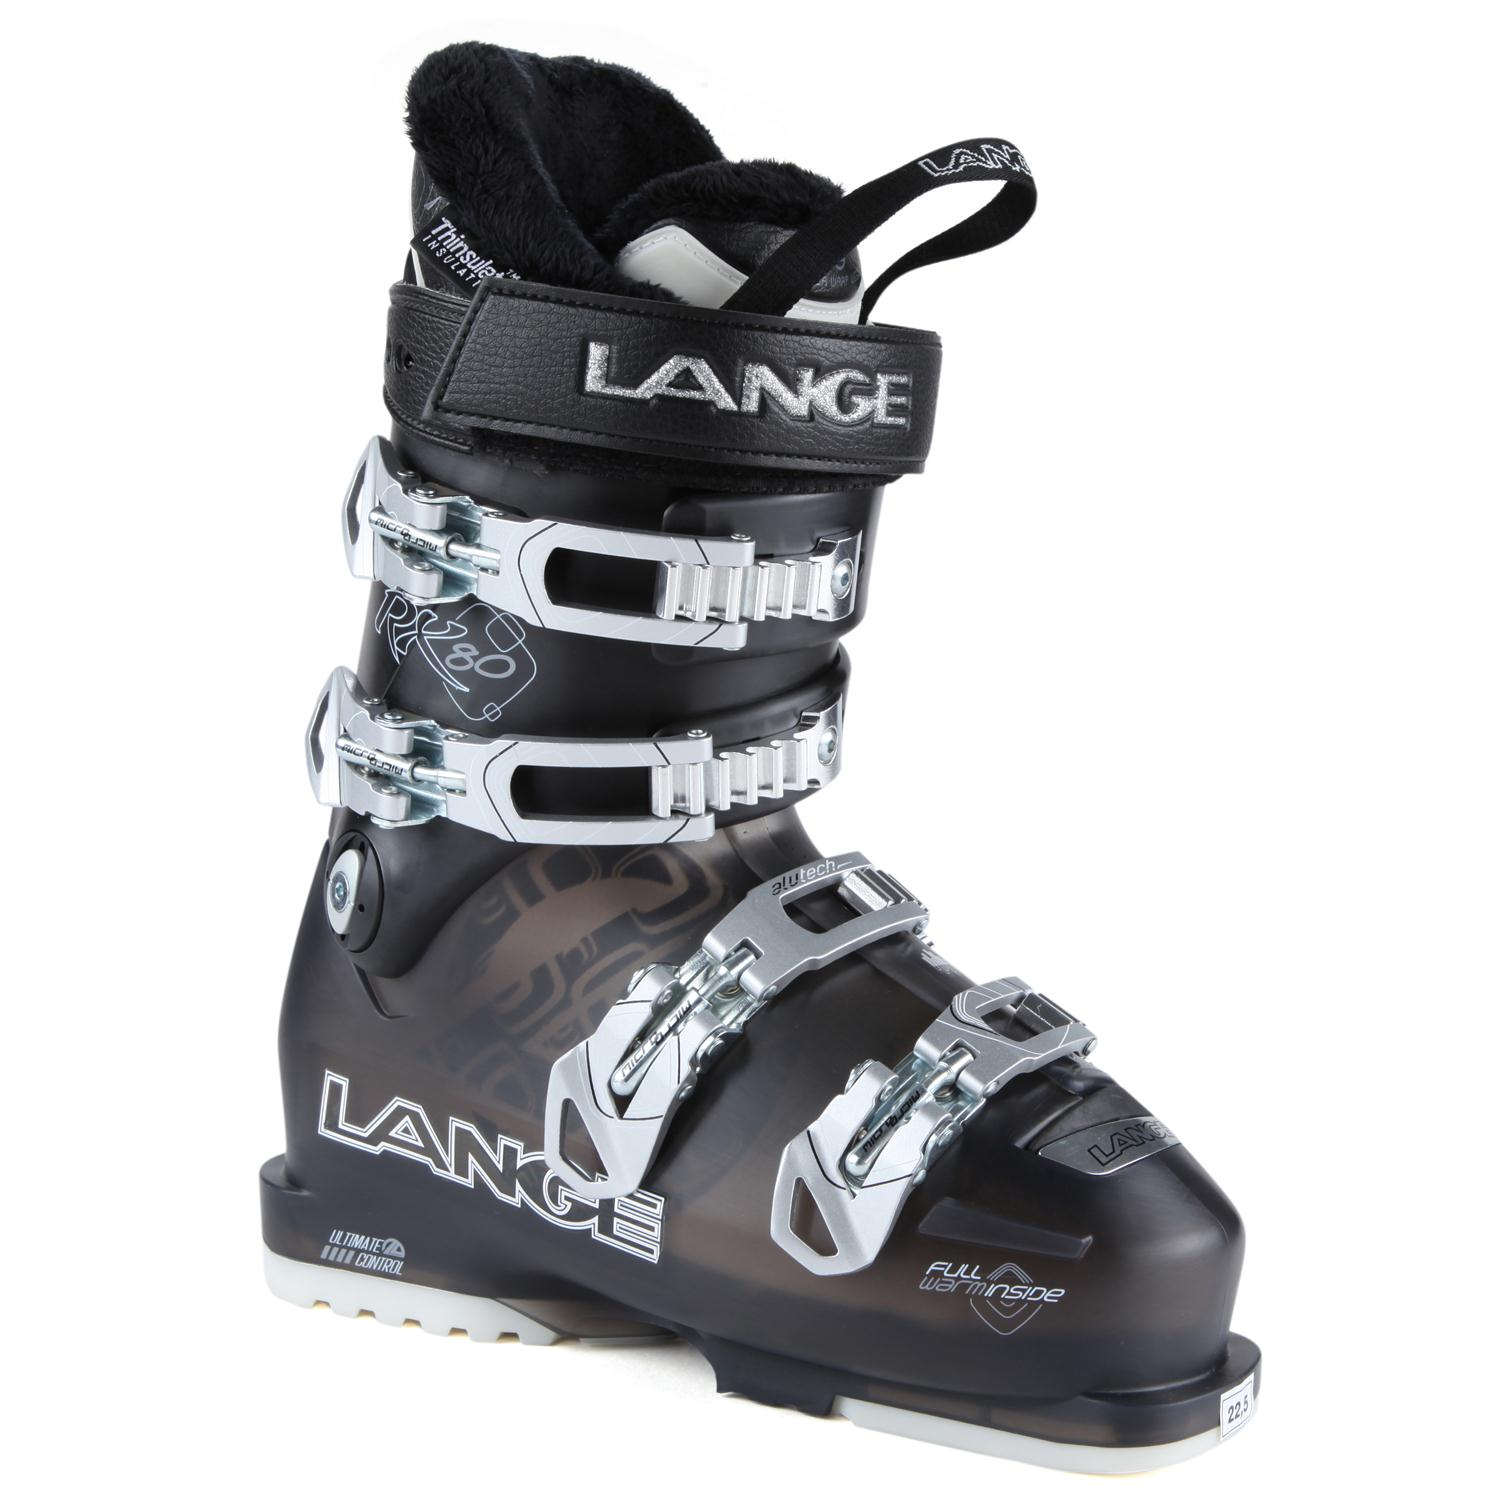 Lange Exclusive RX 80 Ski Boots - Women's 2013 | evo outlet